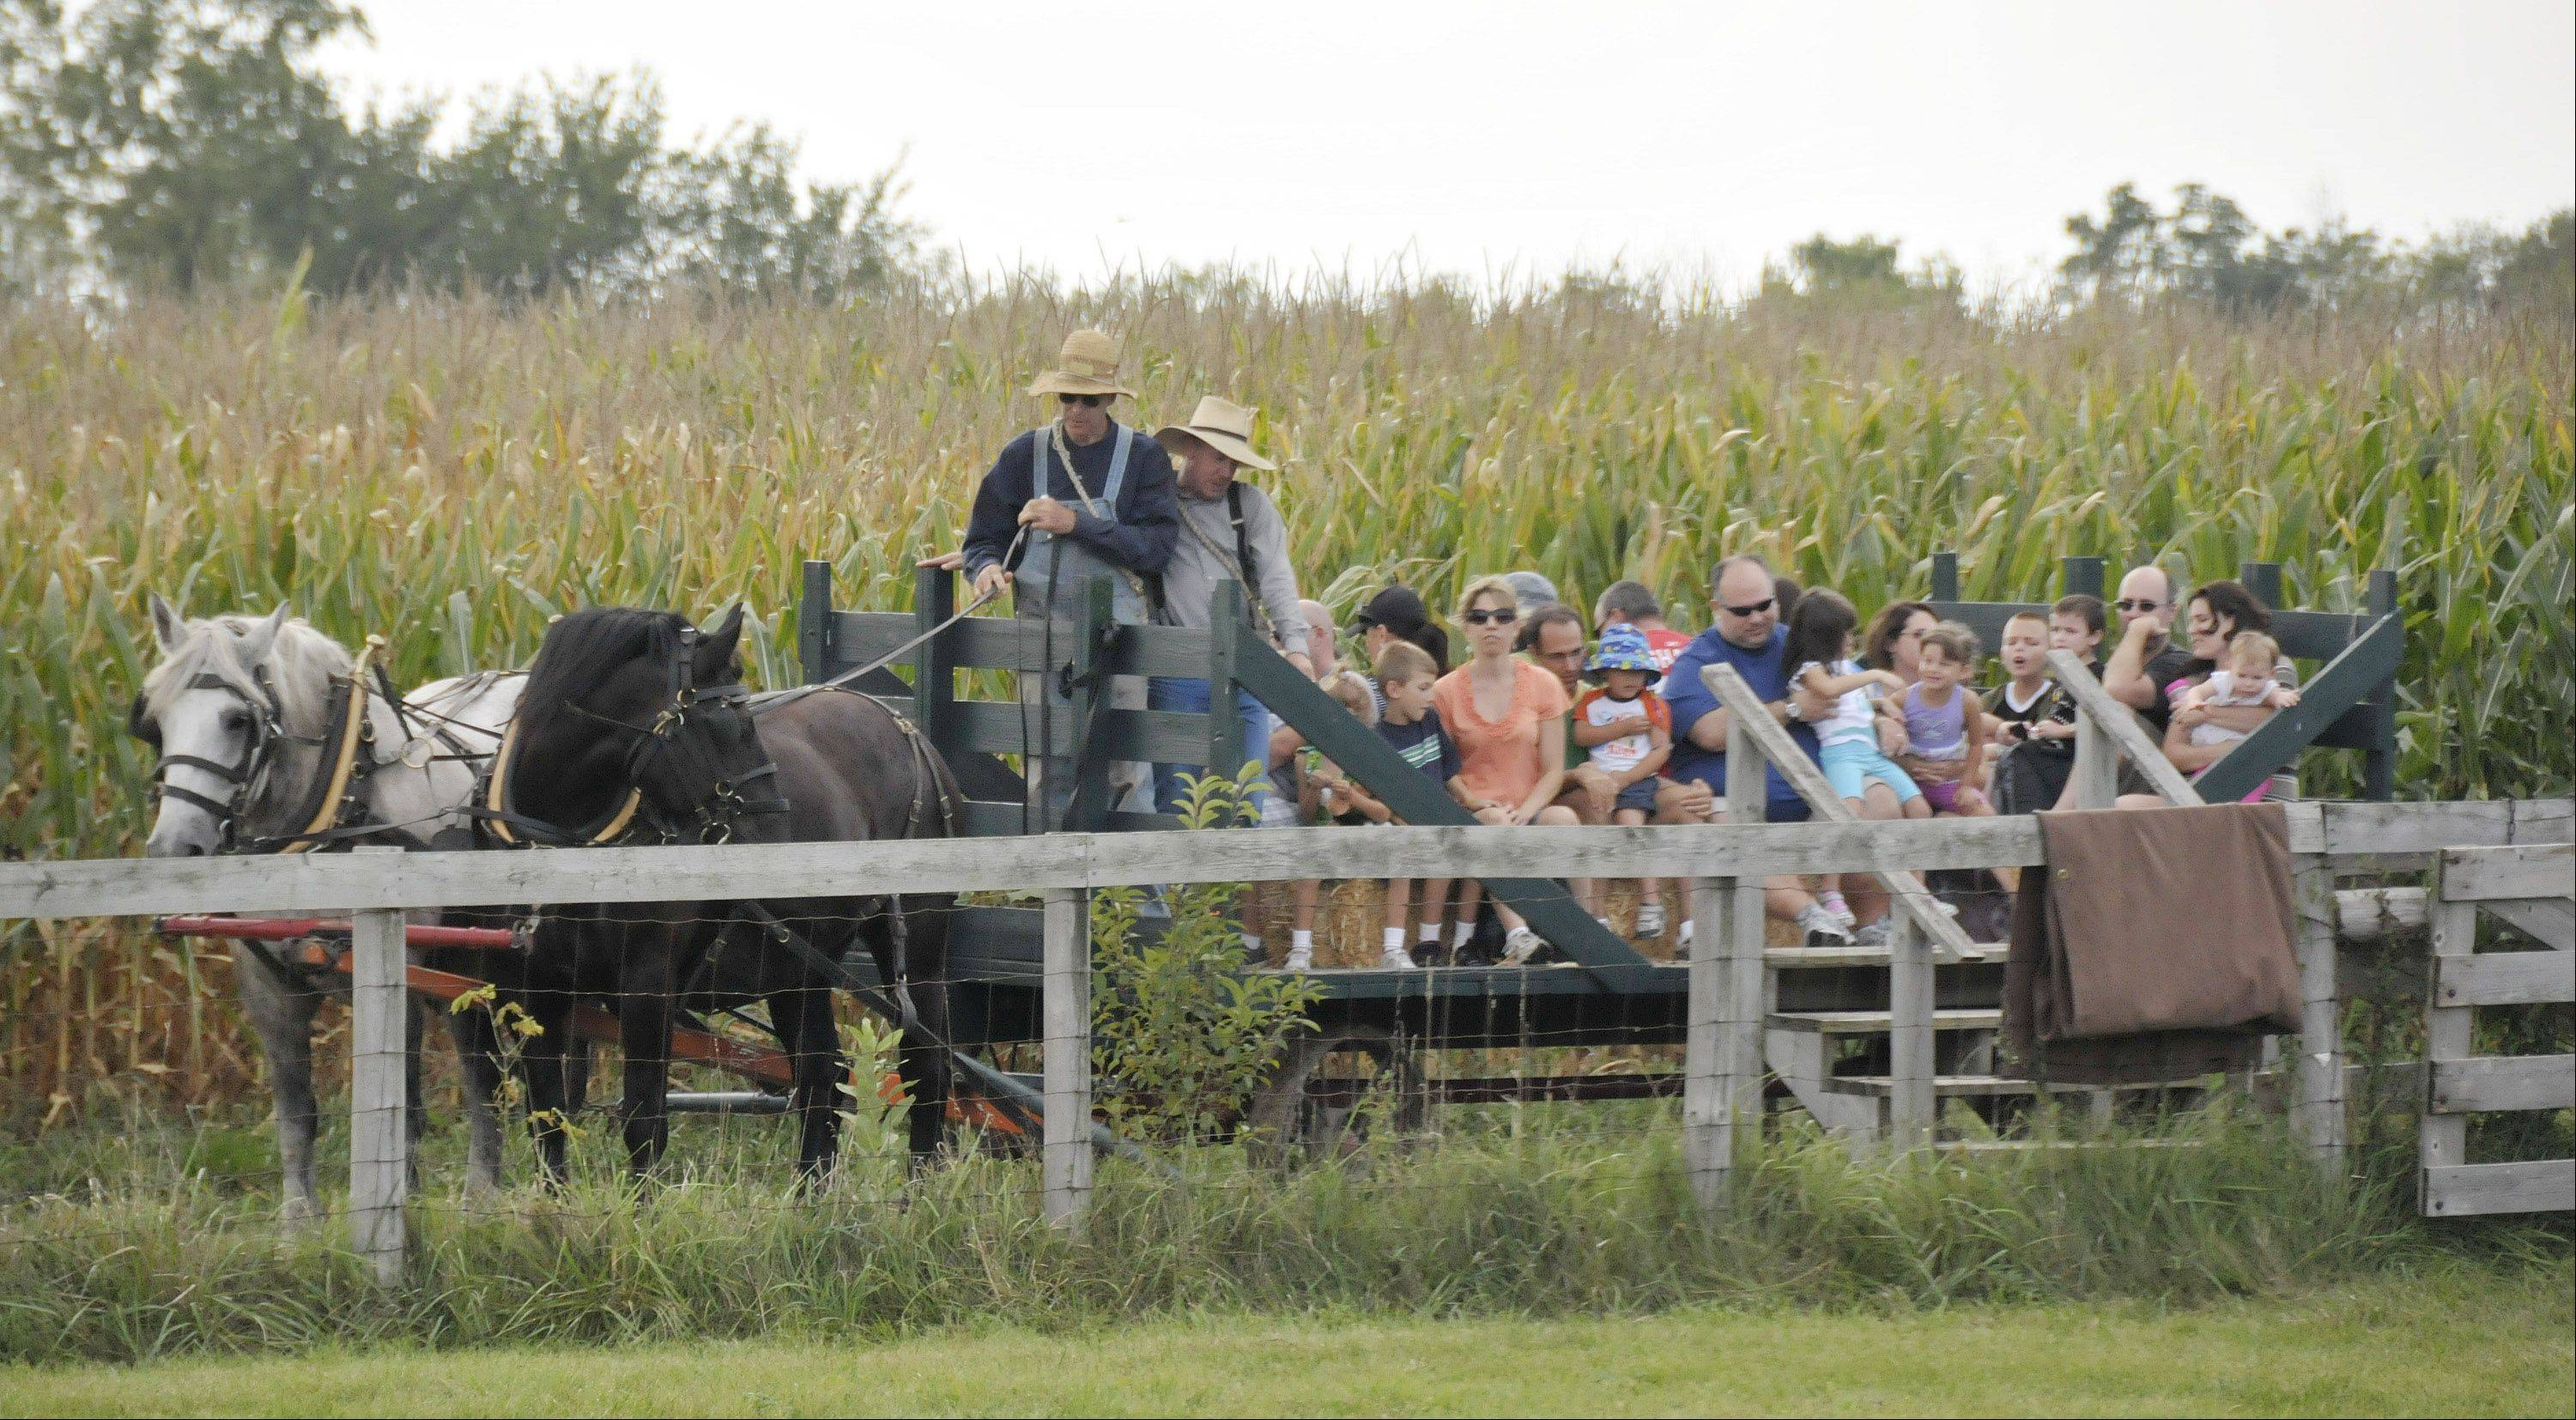 Visitors enjoyed horse-drawn hayrides during the DuPage County Forest Preserve District's old-fashioned country fair Sunday at Kline Creek Farm in West Chicago.